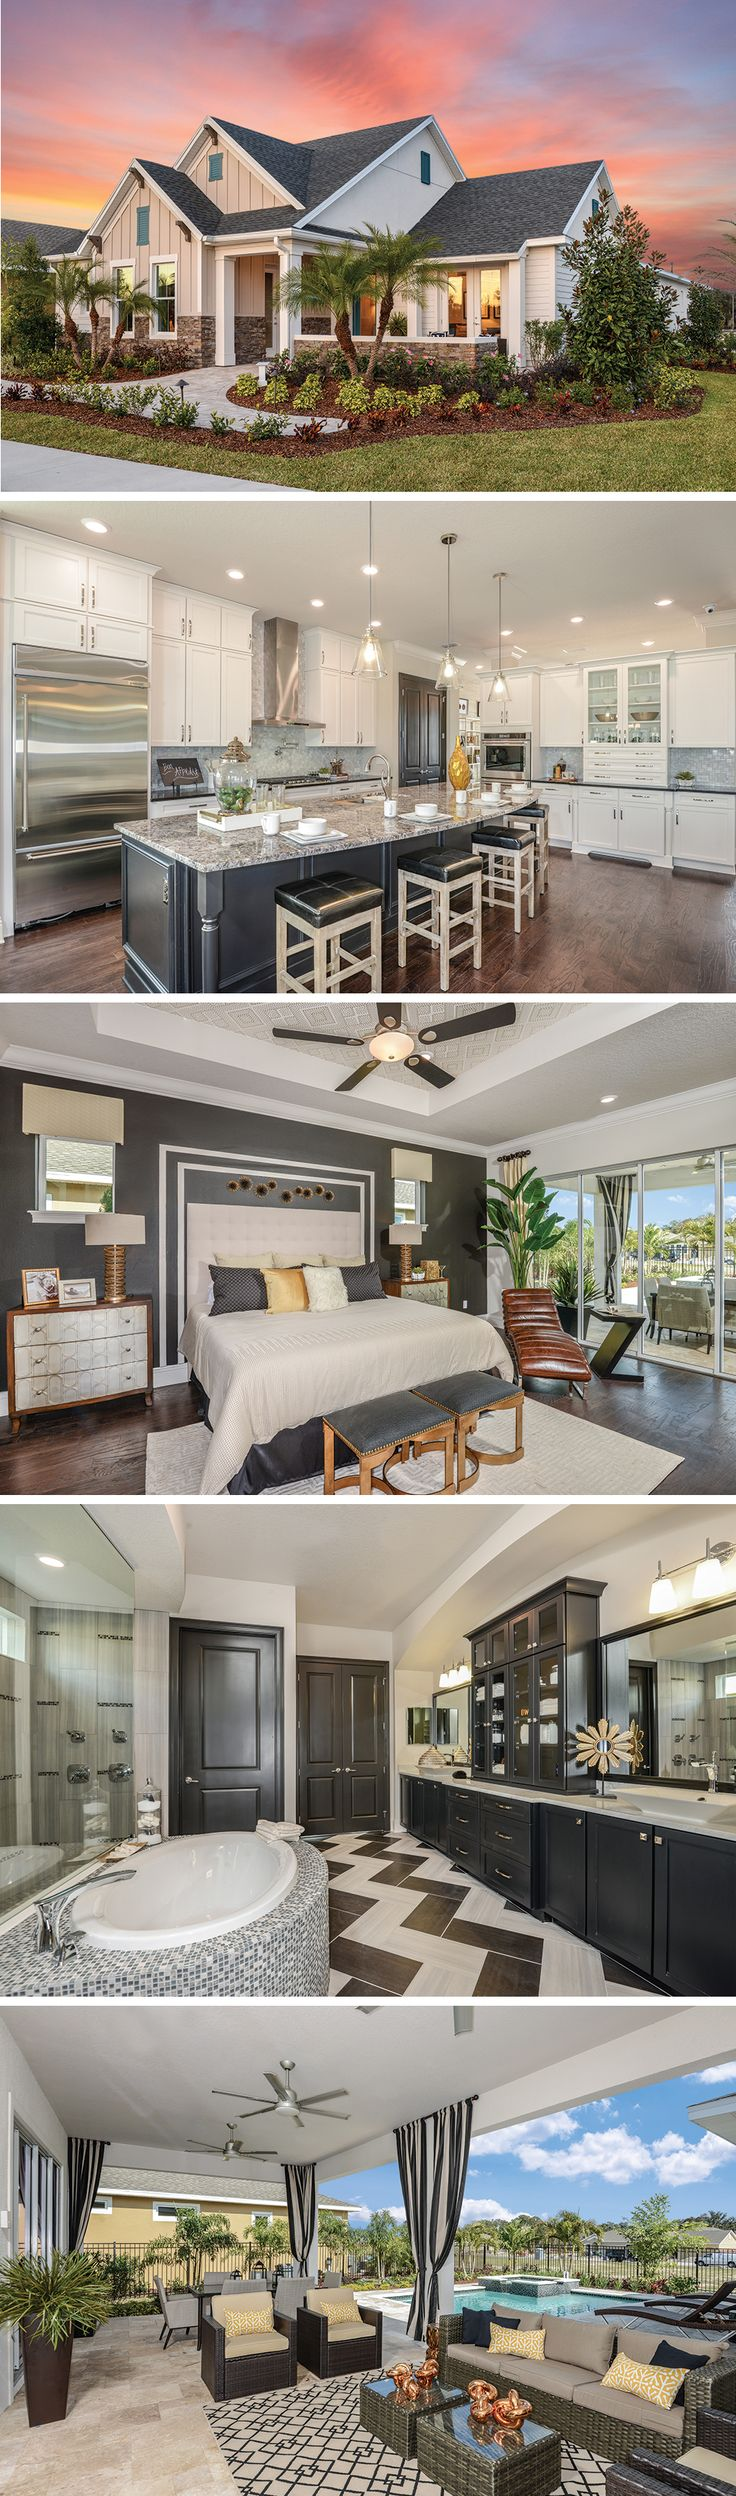 best 10+ large houses ideas on pinterest | it's too big, large